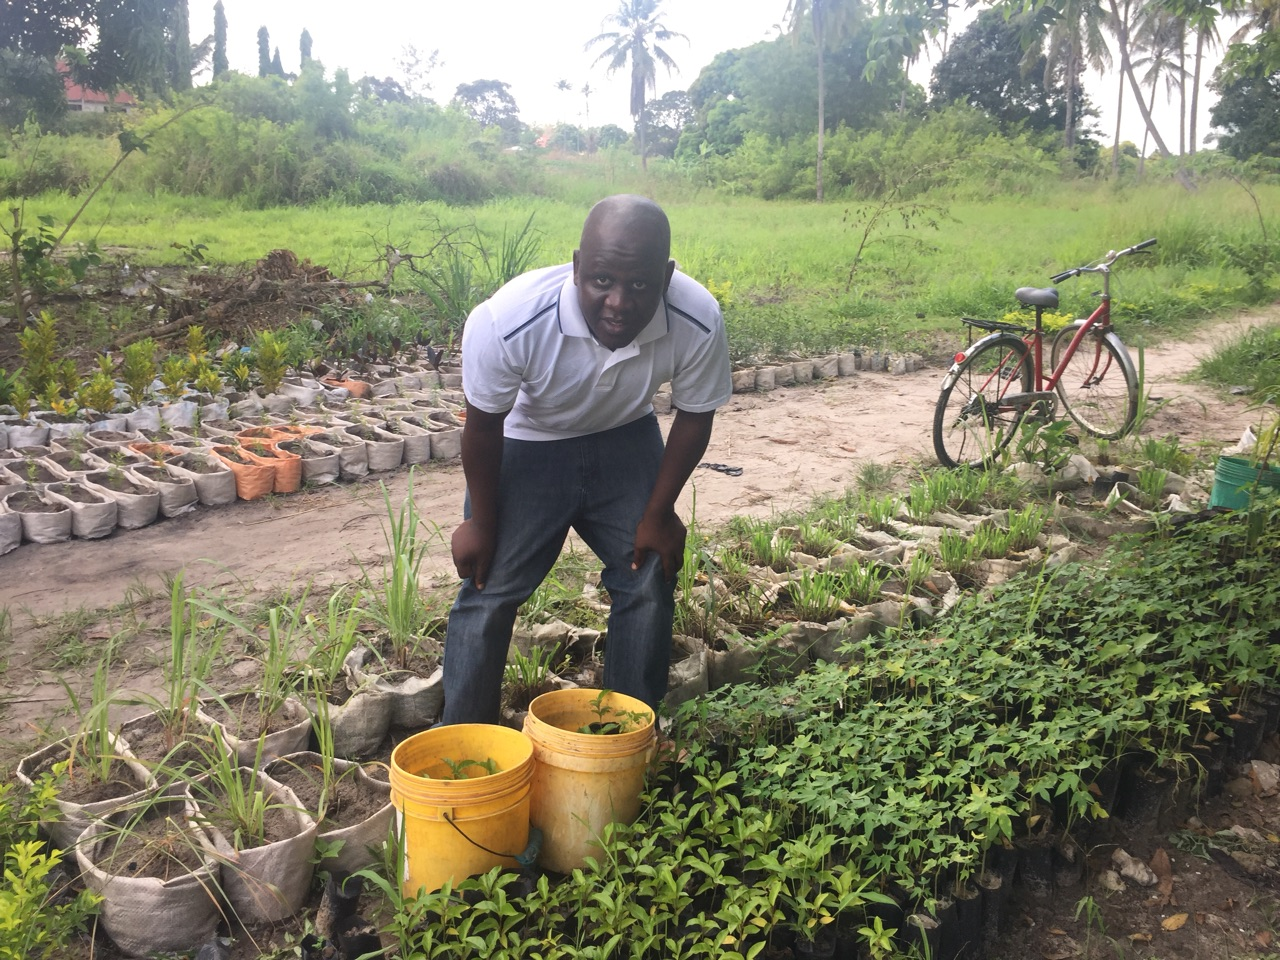 The project manager Ibrahim Hussein had to set up an alternative tree nursery when he realized that the Uwako Farmer Cooperative couldn't reach their targets.